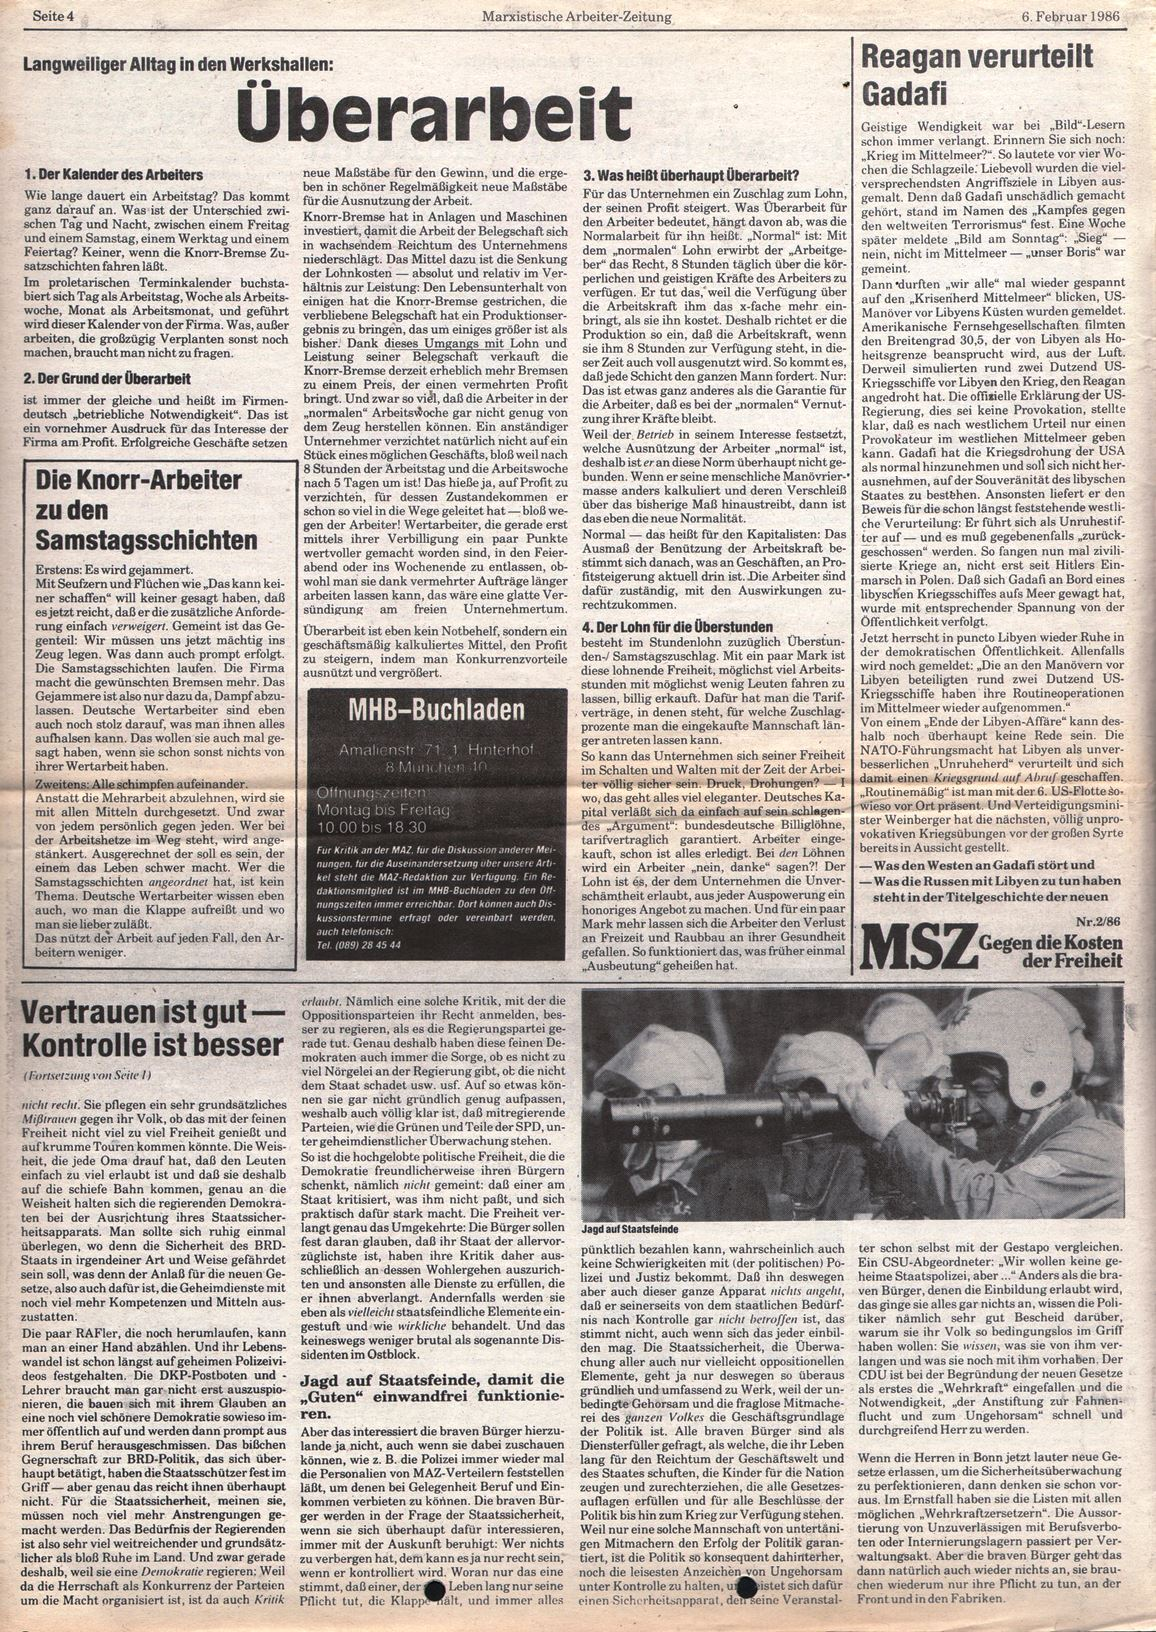 Muenchen_MG_MAZ_Knorr_Bremse_19860206_04